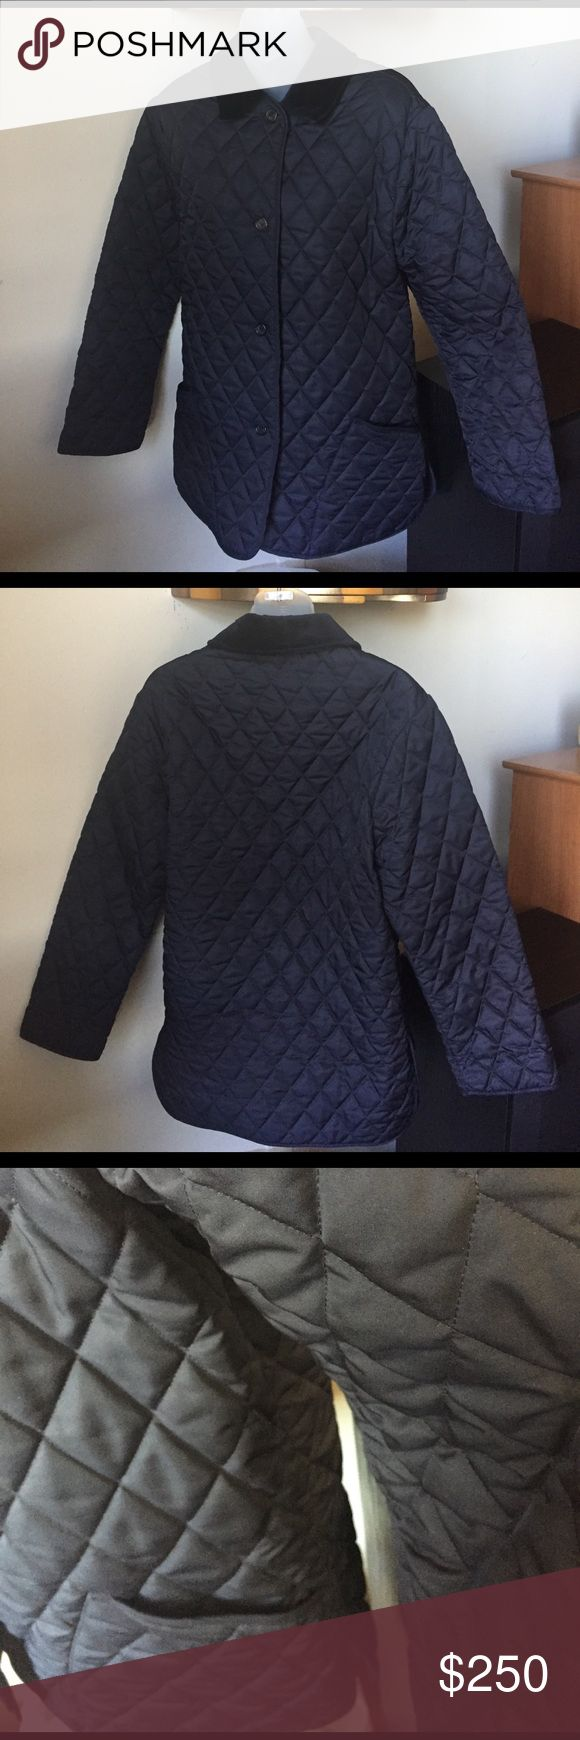 Burberry Quilted Jacket Men's Burberry London Quilted jacket with velvet/cord collar. Side slit and pockets. One small inside pocket. One button is broken as shown in photo. In good used condition. Burberry Jackets & Coats Lightweight & Shirt Jackets